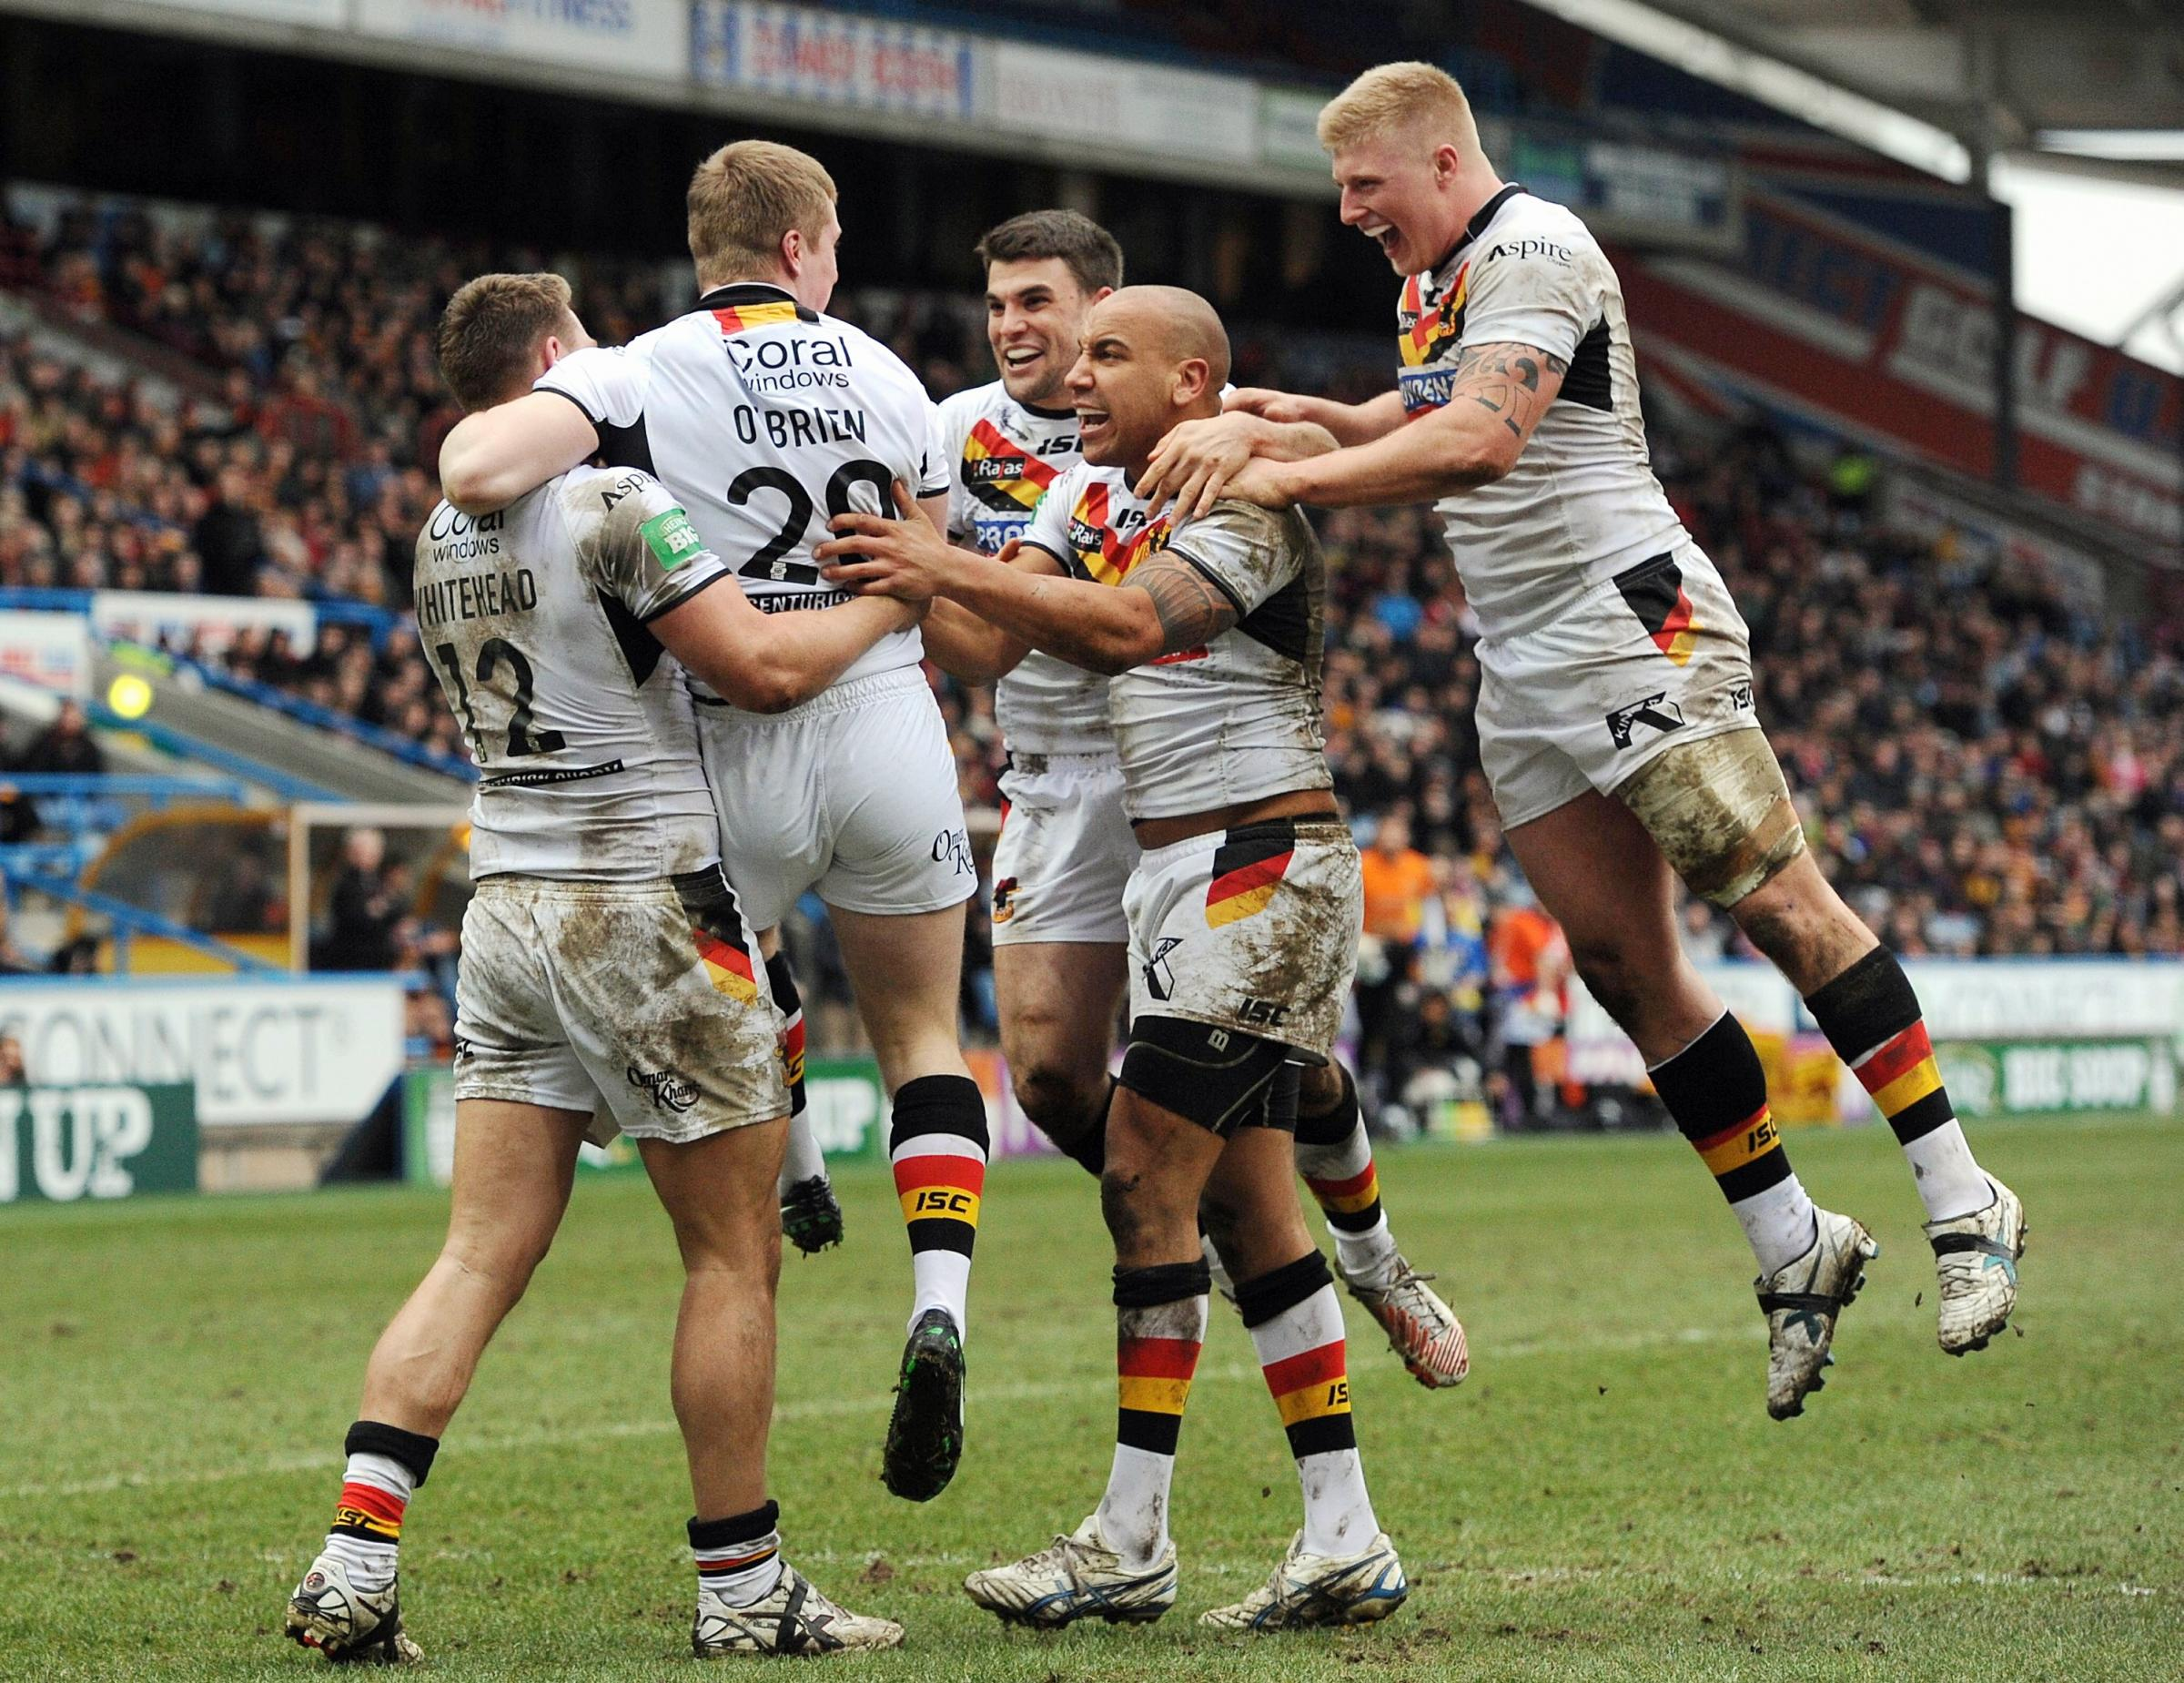 Bulls players celebrate an Adam O'Brien try during their victory at Huddersfield early last season, which was later followed by another big win over the Giants at Odsal